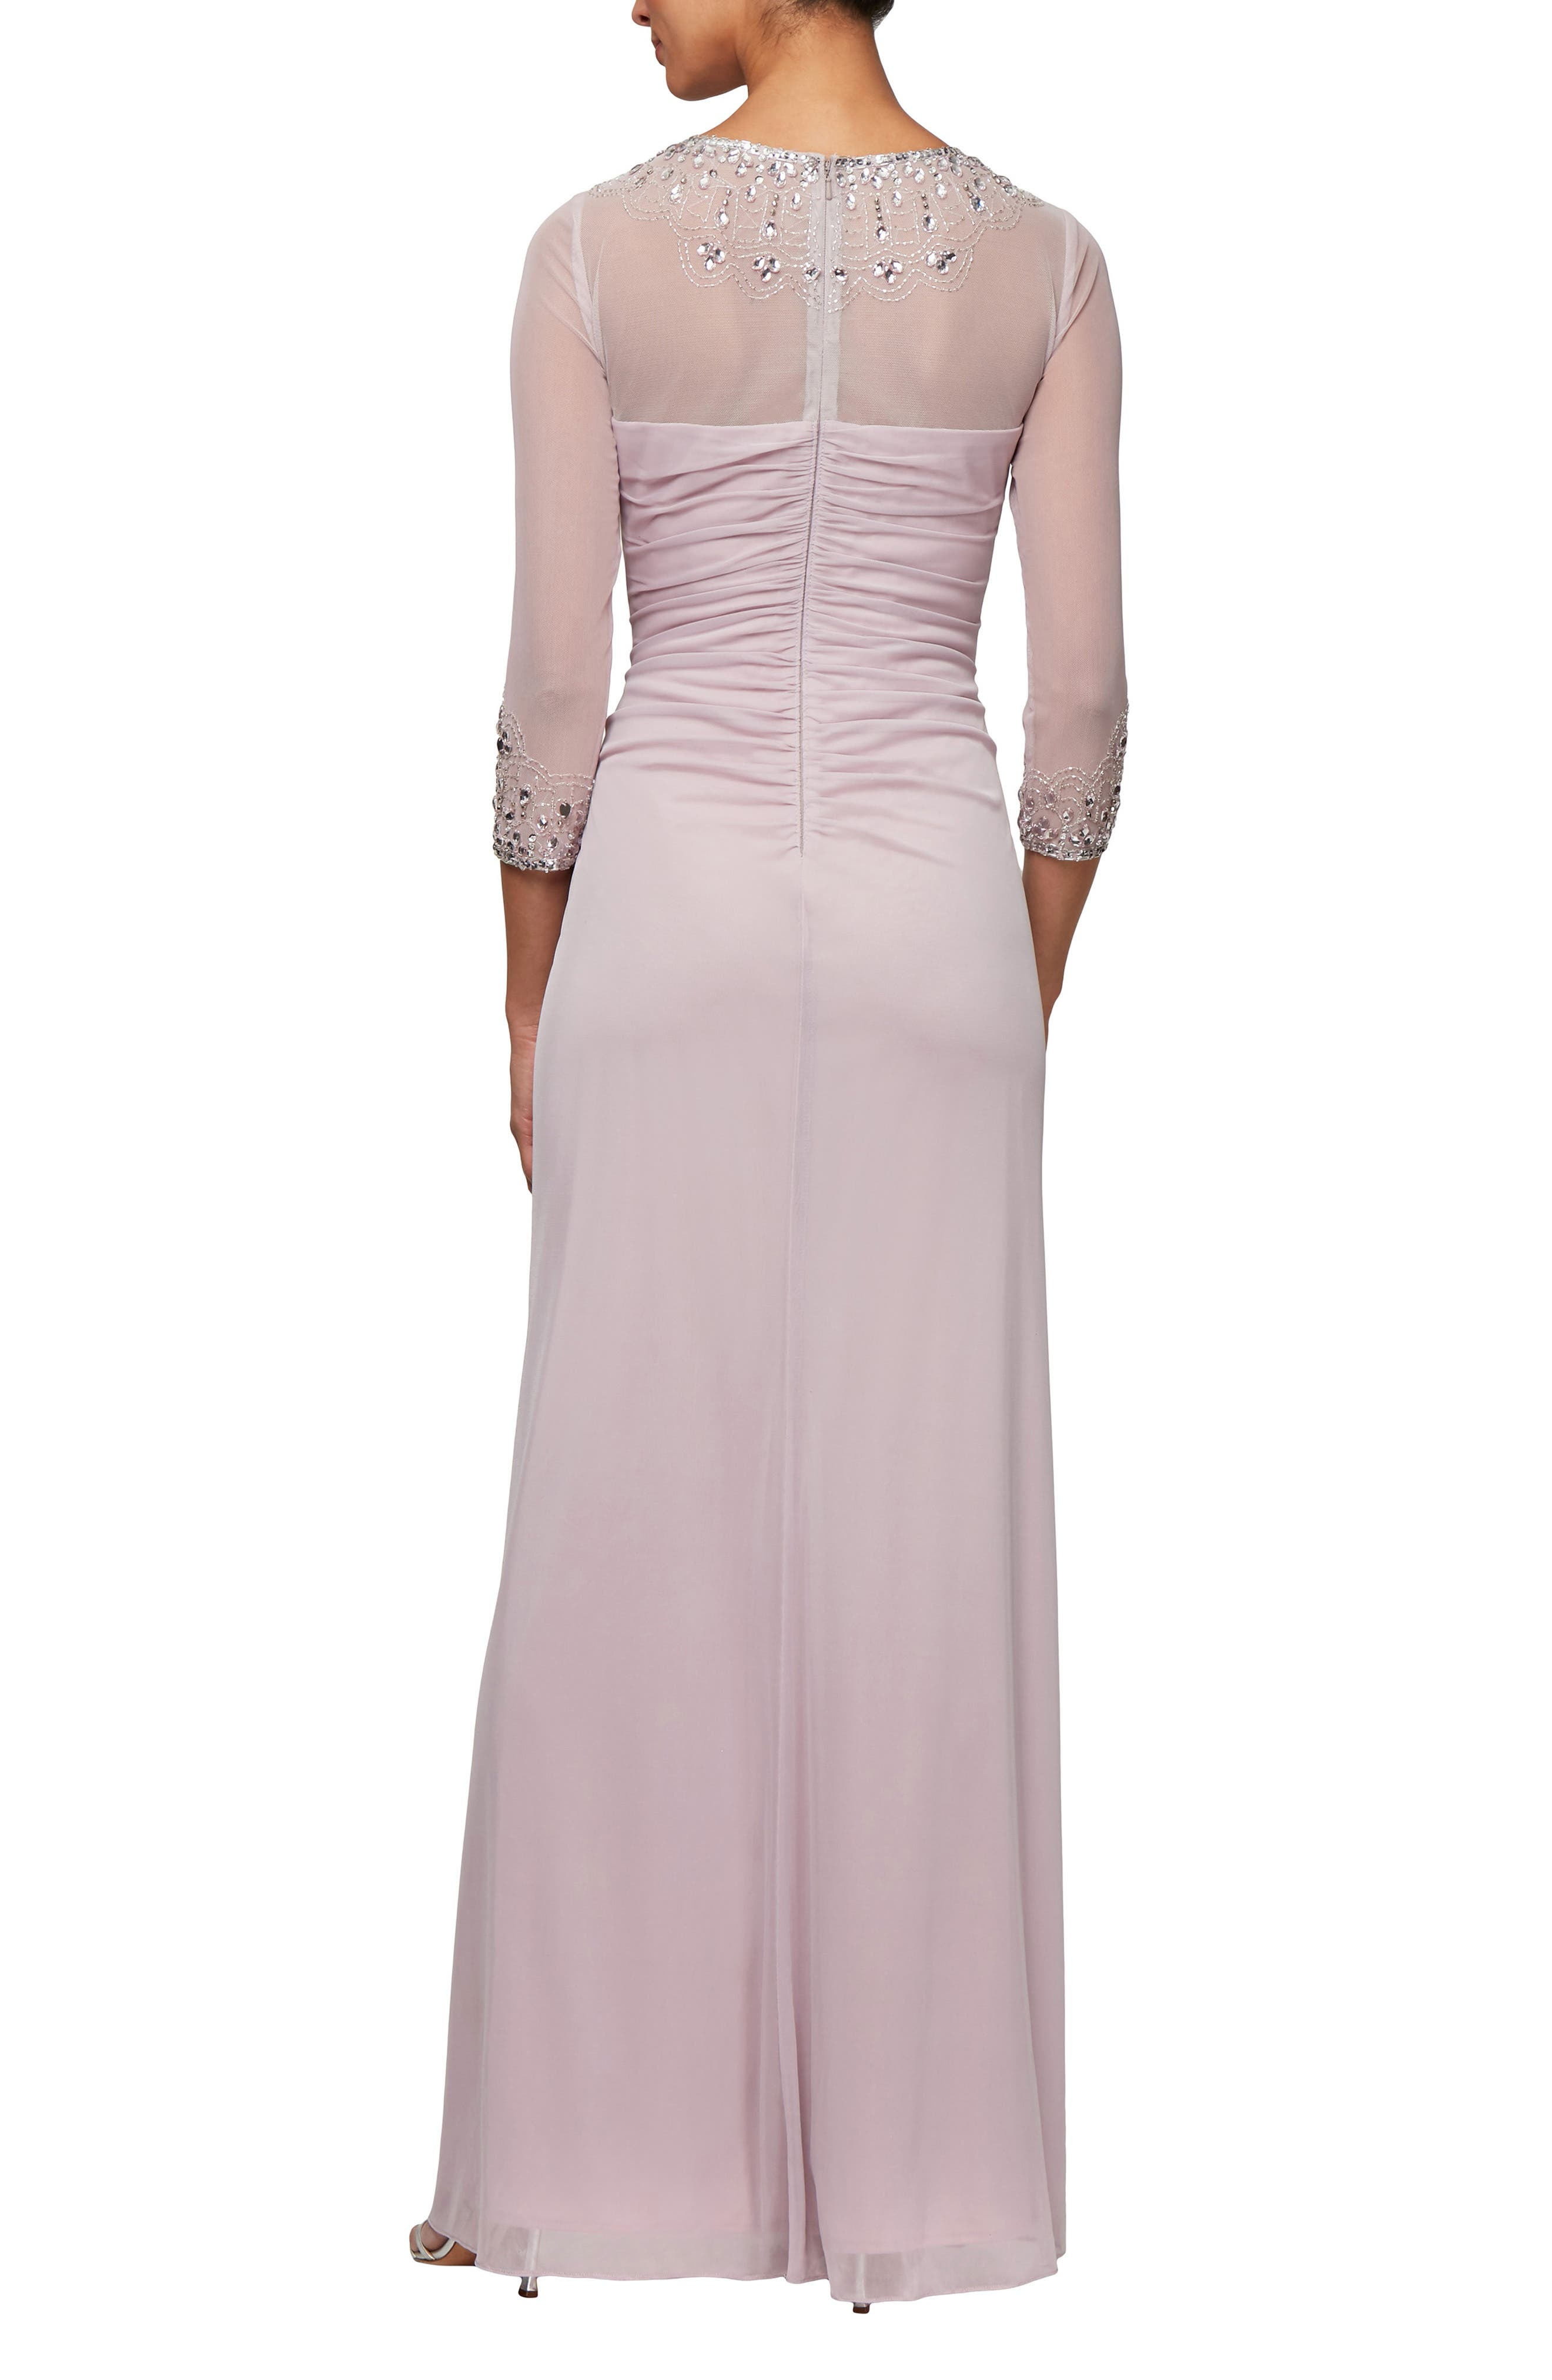 ALEX EVENINGS, Embellished A-Line Gown, Alternate thumbnail 2, color, SMOKEY ORCHID